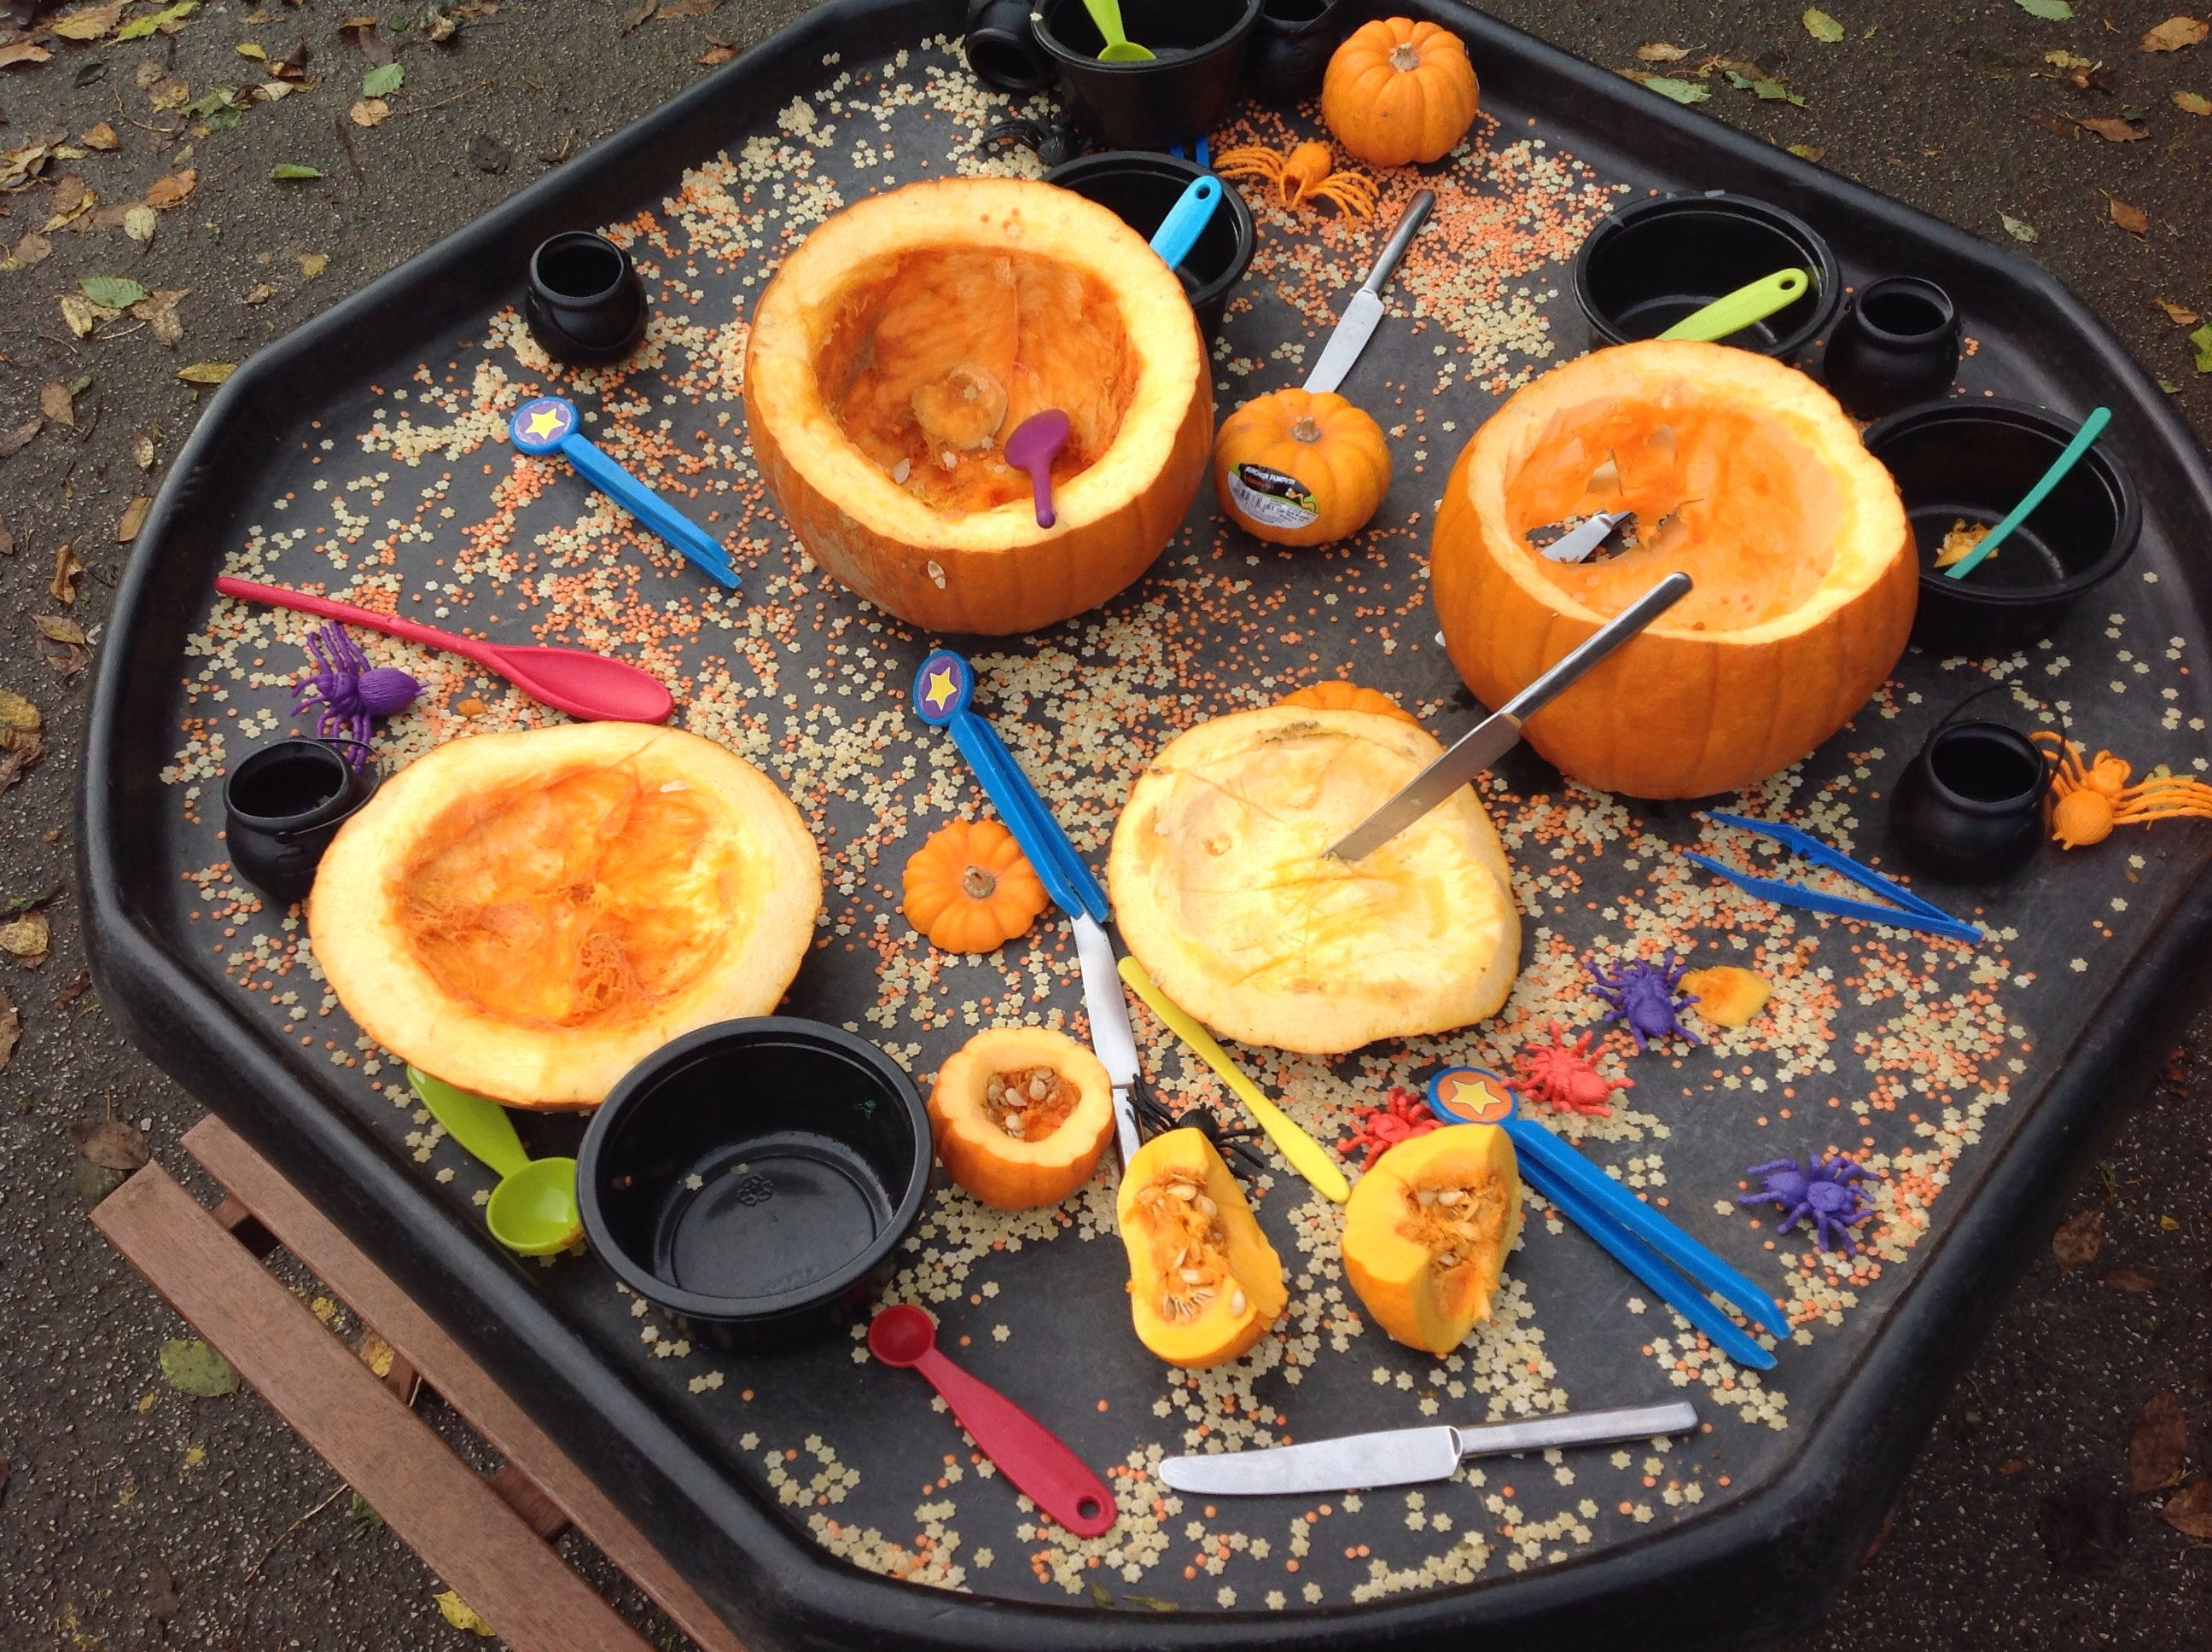 Exploring pumpkins with different tools by shawbo ece